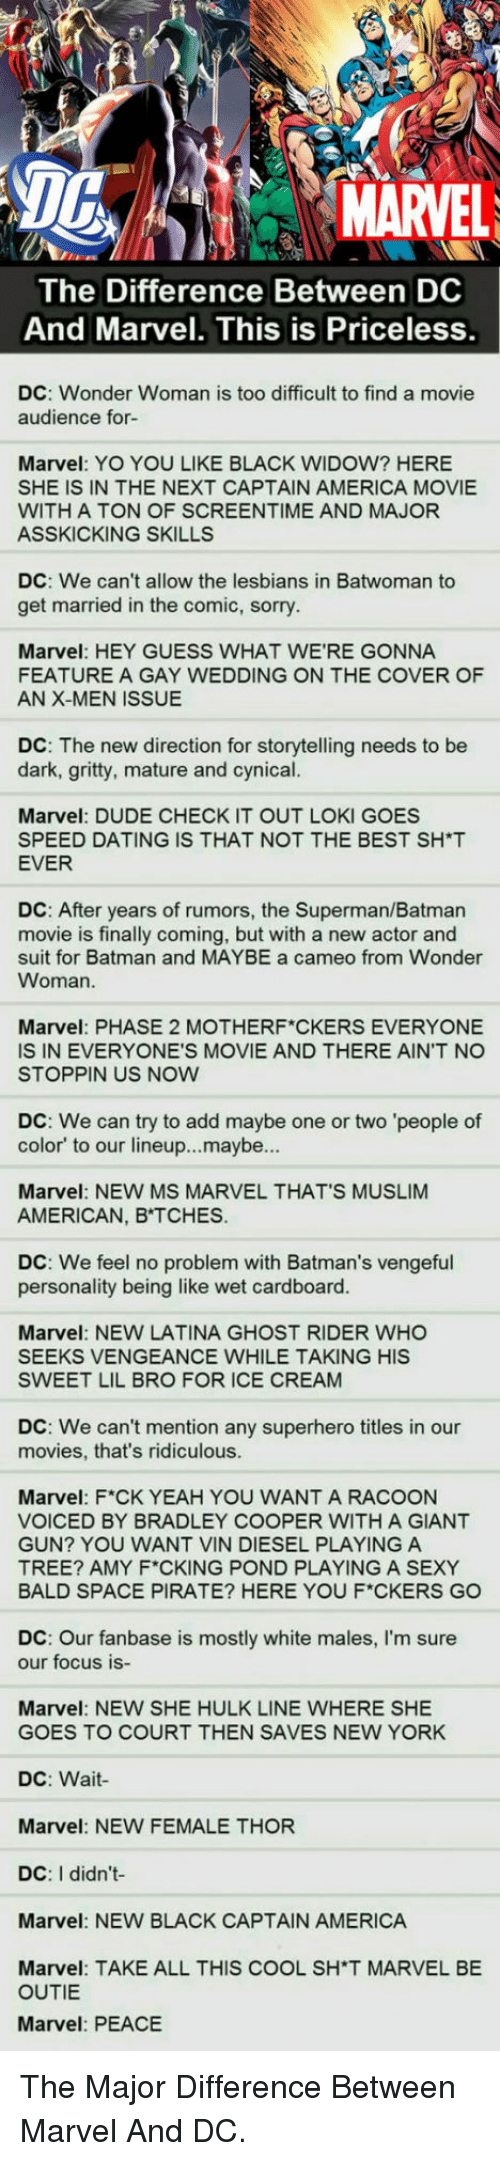 Bradley Cooper: DG  MARVEL  The Difference Between DC  And Marvel. This is Priceless  DC: Wonder Woman is too difficult to find a movie  audience for-  Marvel: YO YOU LIKE BLACK WIDOW? HERE  SHE IS IN THE NEXT CAPTAIN AMERICA MOVIE  WITH A TON OF SCREENTIME AND MAJOR  ASSKICKING SKILLS  DC: We can't allow the lesbians in Batwoman to  get married in the comic, sorry  Marvel: HEY GUESS WHAT WE'RE GONNA  FEATURE A GAY WEDDING ON THE COVER OF  AN X-MEN ISSUE  DC: The new direction for storytelling needs to be  dark, gritty, mature and cynical.  ES  Marvel: DUDE CHECK IT OUT LOKI GO  SPEED DATING IS THAT NOT THE BEST SH*T  EVER  DC: After years of rumors, the Superman/Batman  movie is finally coming, but with a new actor and  suit for Batman and MAYBE a cameo from Wonder  Woman.  Marvel: PHASE 2 MOTHERF CKERS EVERYONE  IS IN EVERYONE'S MOVIE AND THERE AIN'T NO  STOPPIN US NOW  DC: We can try to add maybe one or two 'people of  color' to our lineup...maybe...  Marvel: NEW MS MARVEL THAT'S MUSLIM  AMERICAN, B TCHES.  DC: We feel no problem with Batman's vengeful  personality being like wet cardboard.  Marvel: NEW LATINA GHOST RIDER WHO  SEEKS VENGEANCE WHILE TAKING HIS  SWEET LIL BRO FOR ICE CREAM  DC: We can't mention any superhero titles in our  movies, that's ridiculous  Marvel: F*CK YEAH YOU WANT A RACOON  VOICED BY BRADLEY COOPER WITH A GIANT  GUN? YOU WANT VIN DIESEL PLAYING A  TREE? AMY F CKING POND PLAYING A SEXY  BALD SPACE PIRATE? HERE YOU F*CKERS GO  DC: Our fanbase is mostly white males, I'm sure  our focus is-  Marvel: NEW SHE HULK LINE WHERE SHE  GOES TO COURT THEN SAVES NEW YORK  DC: Wait  Marvel: NEW FEMALE THOR  DC: I didn't  Marvel: NEW BLACK CAPTAIN AMERICA  Marvel: TAKE ALL THIS COOL SH'T MARVEL BE  OUTIE  Marvel: PEACE <p>The Major Difference Between Marvel And DC.</p>